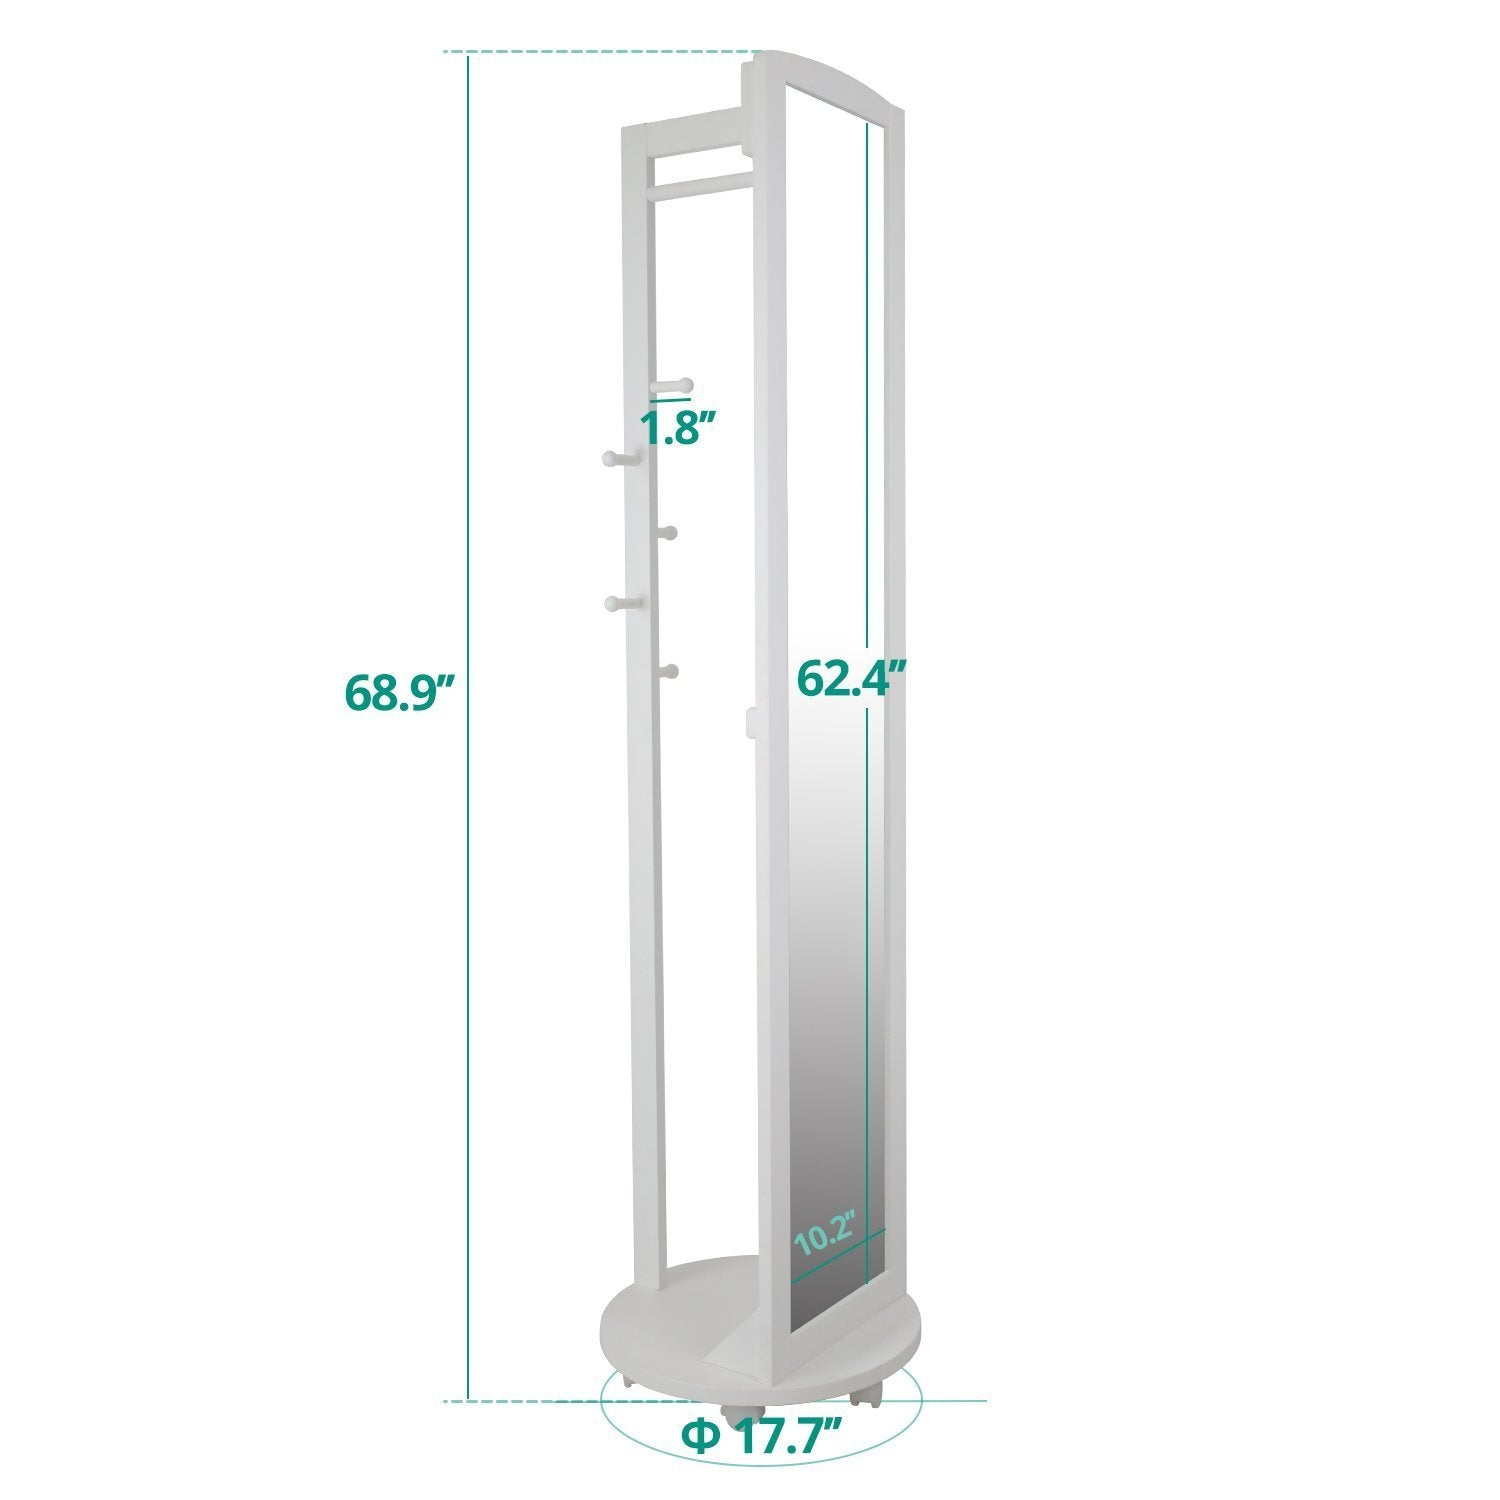 Storage tiny times multifunctional 360 swivel wooden frame 69 tall full length mirror dressing mirror body mirror floor mirror with hanging bar coat stand coat hooks ivory white